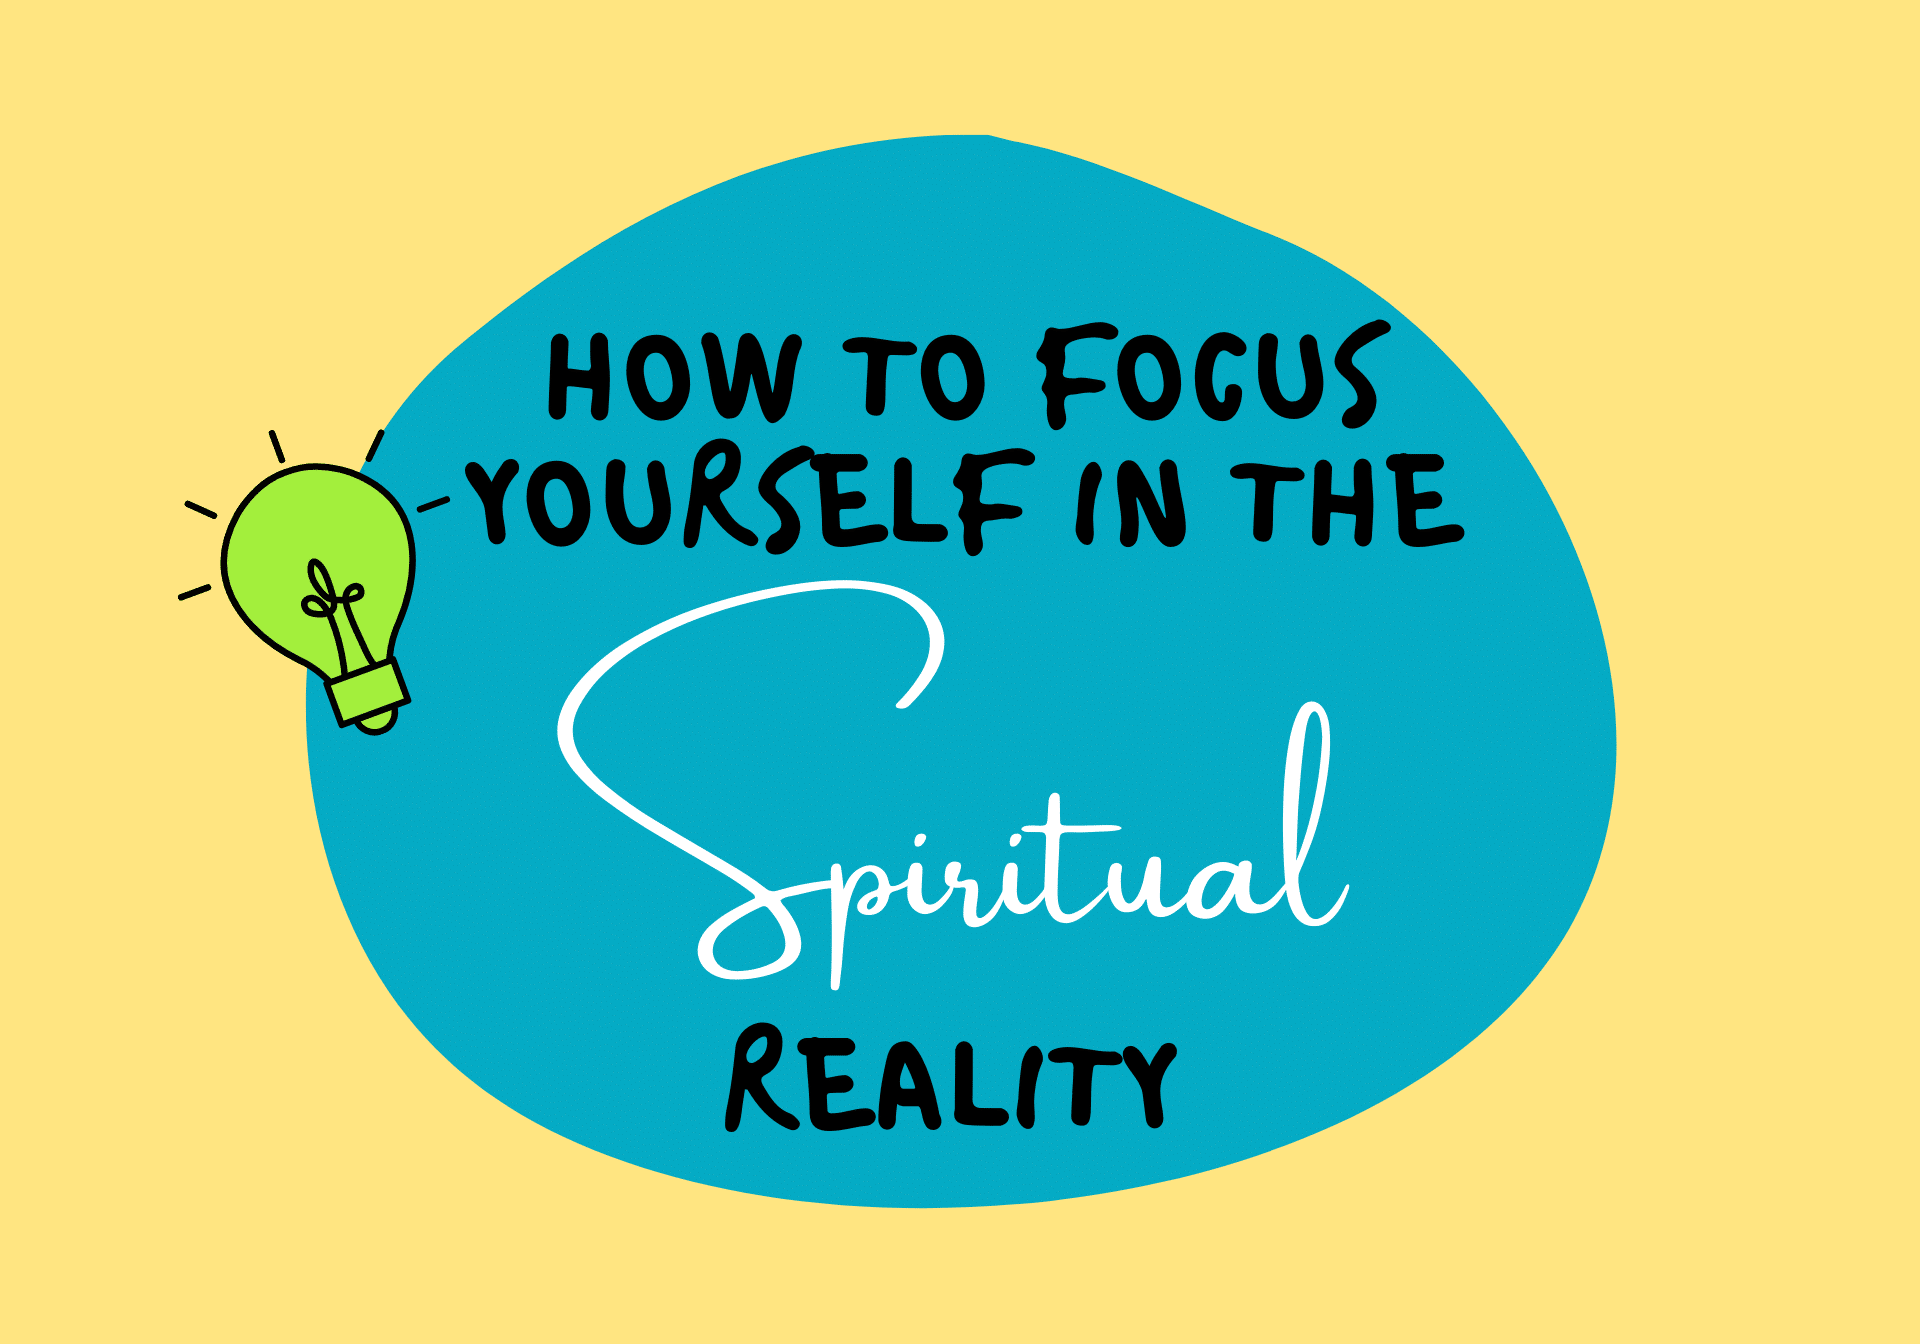 How To Focus Yourself In The Spiritual Reality